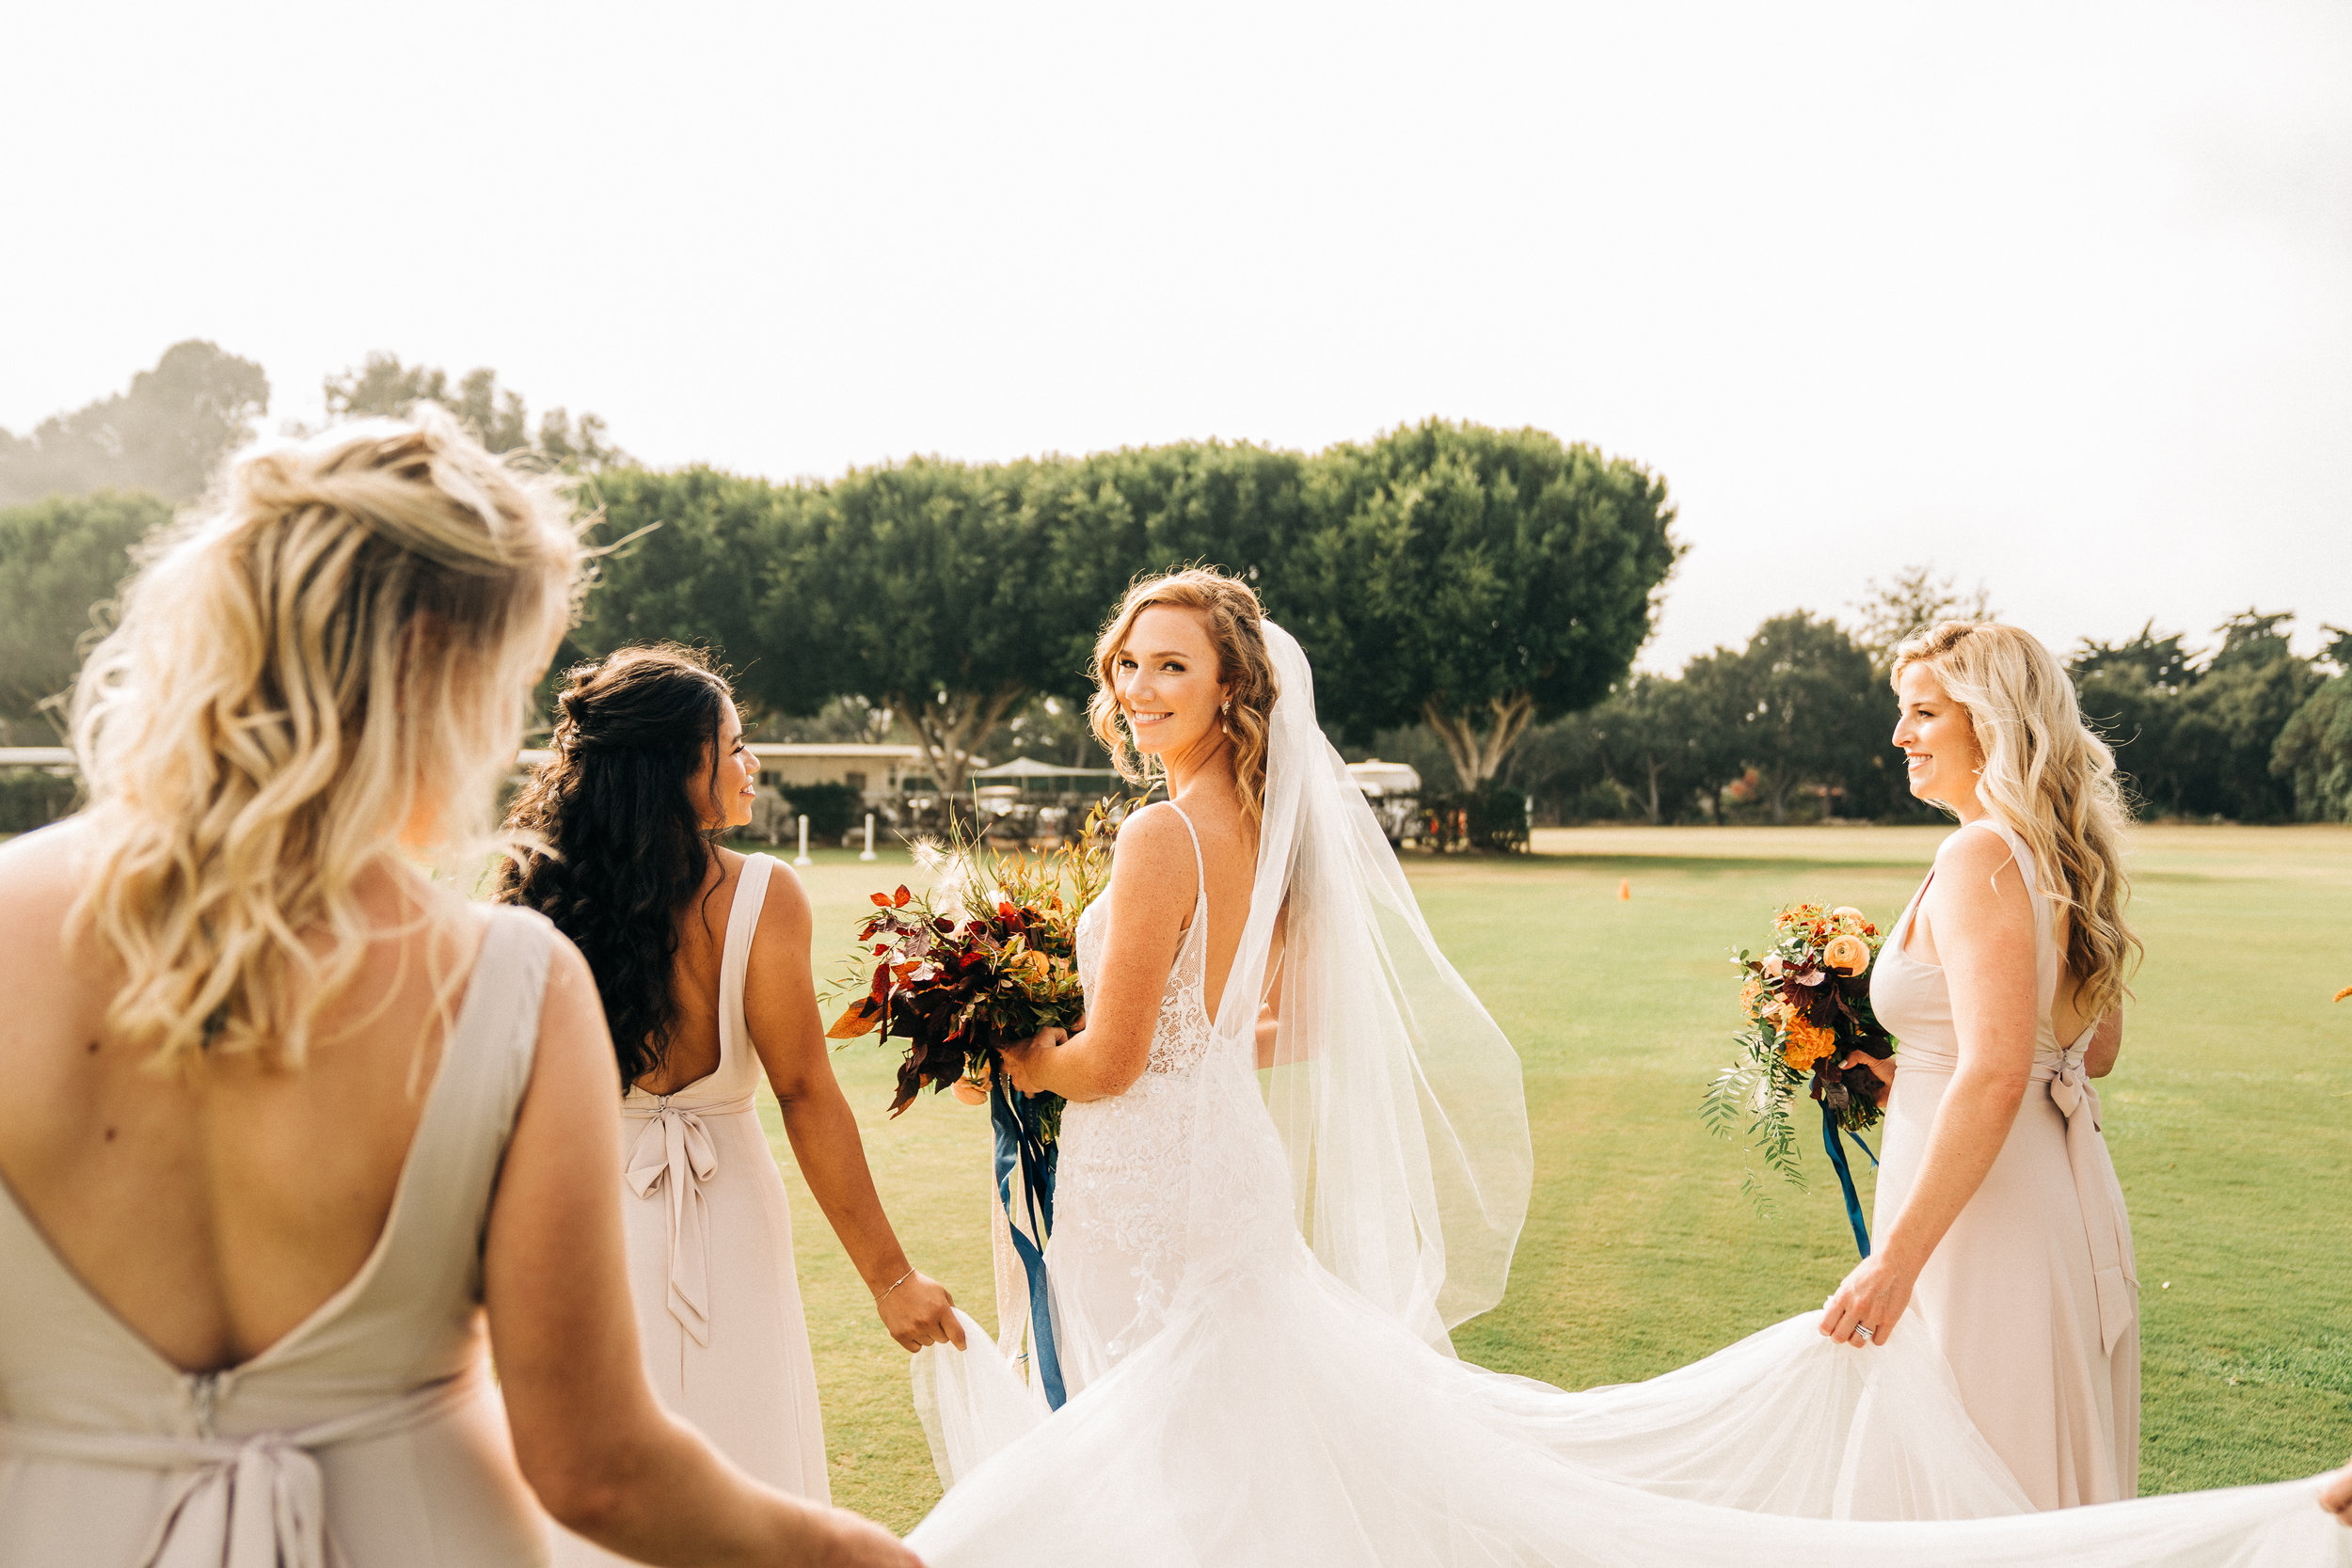 www.santabarbarawedding.com | Brandon Bibbins Photography | The Cottages at Polo Run | Christina Welch Floral | Bride Strolls with Bridesmaids